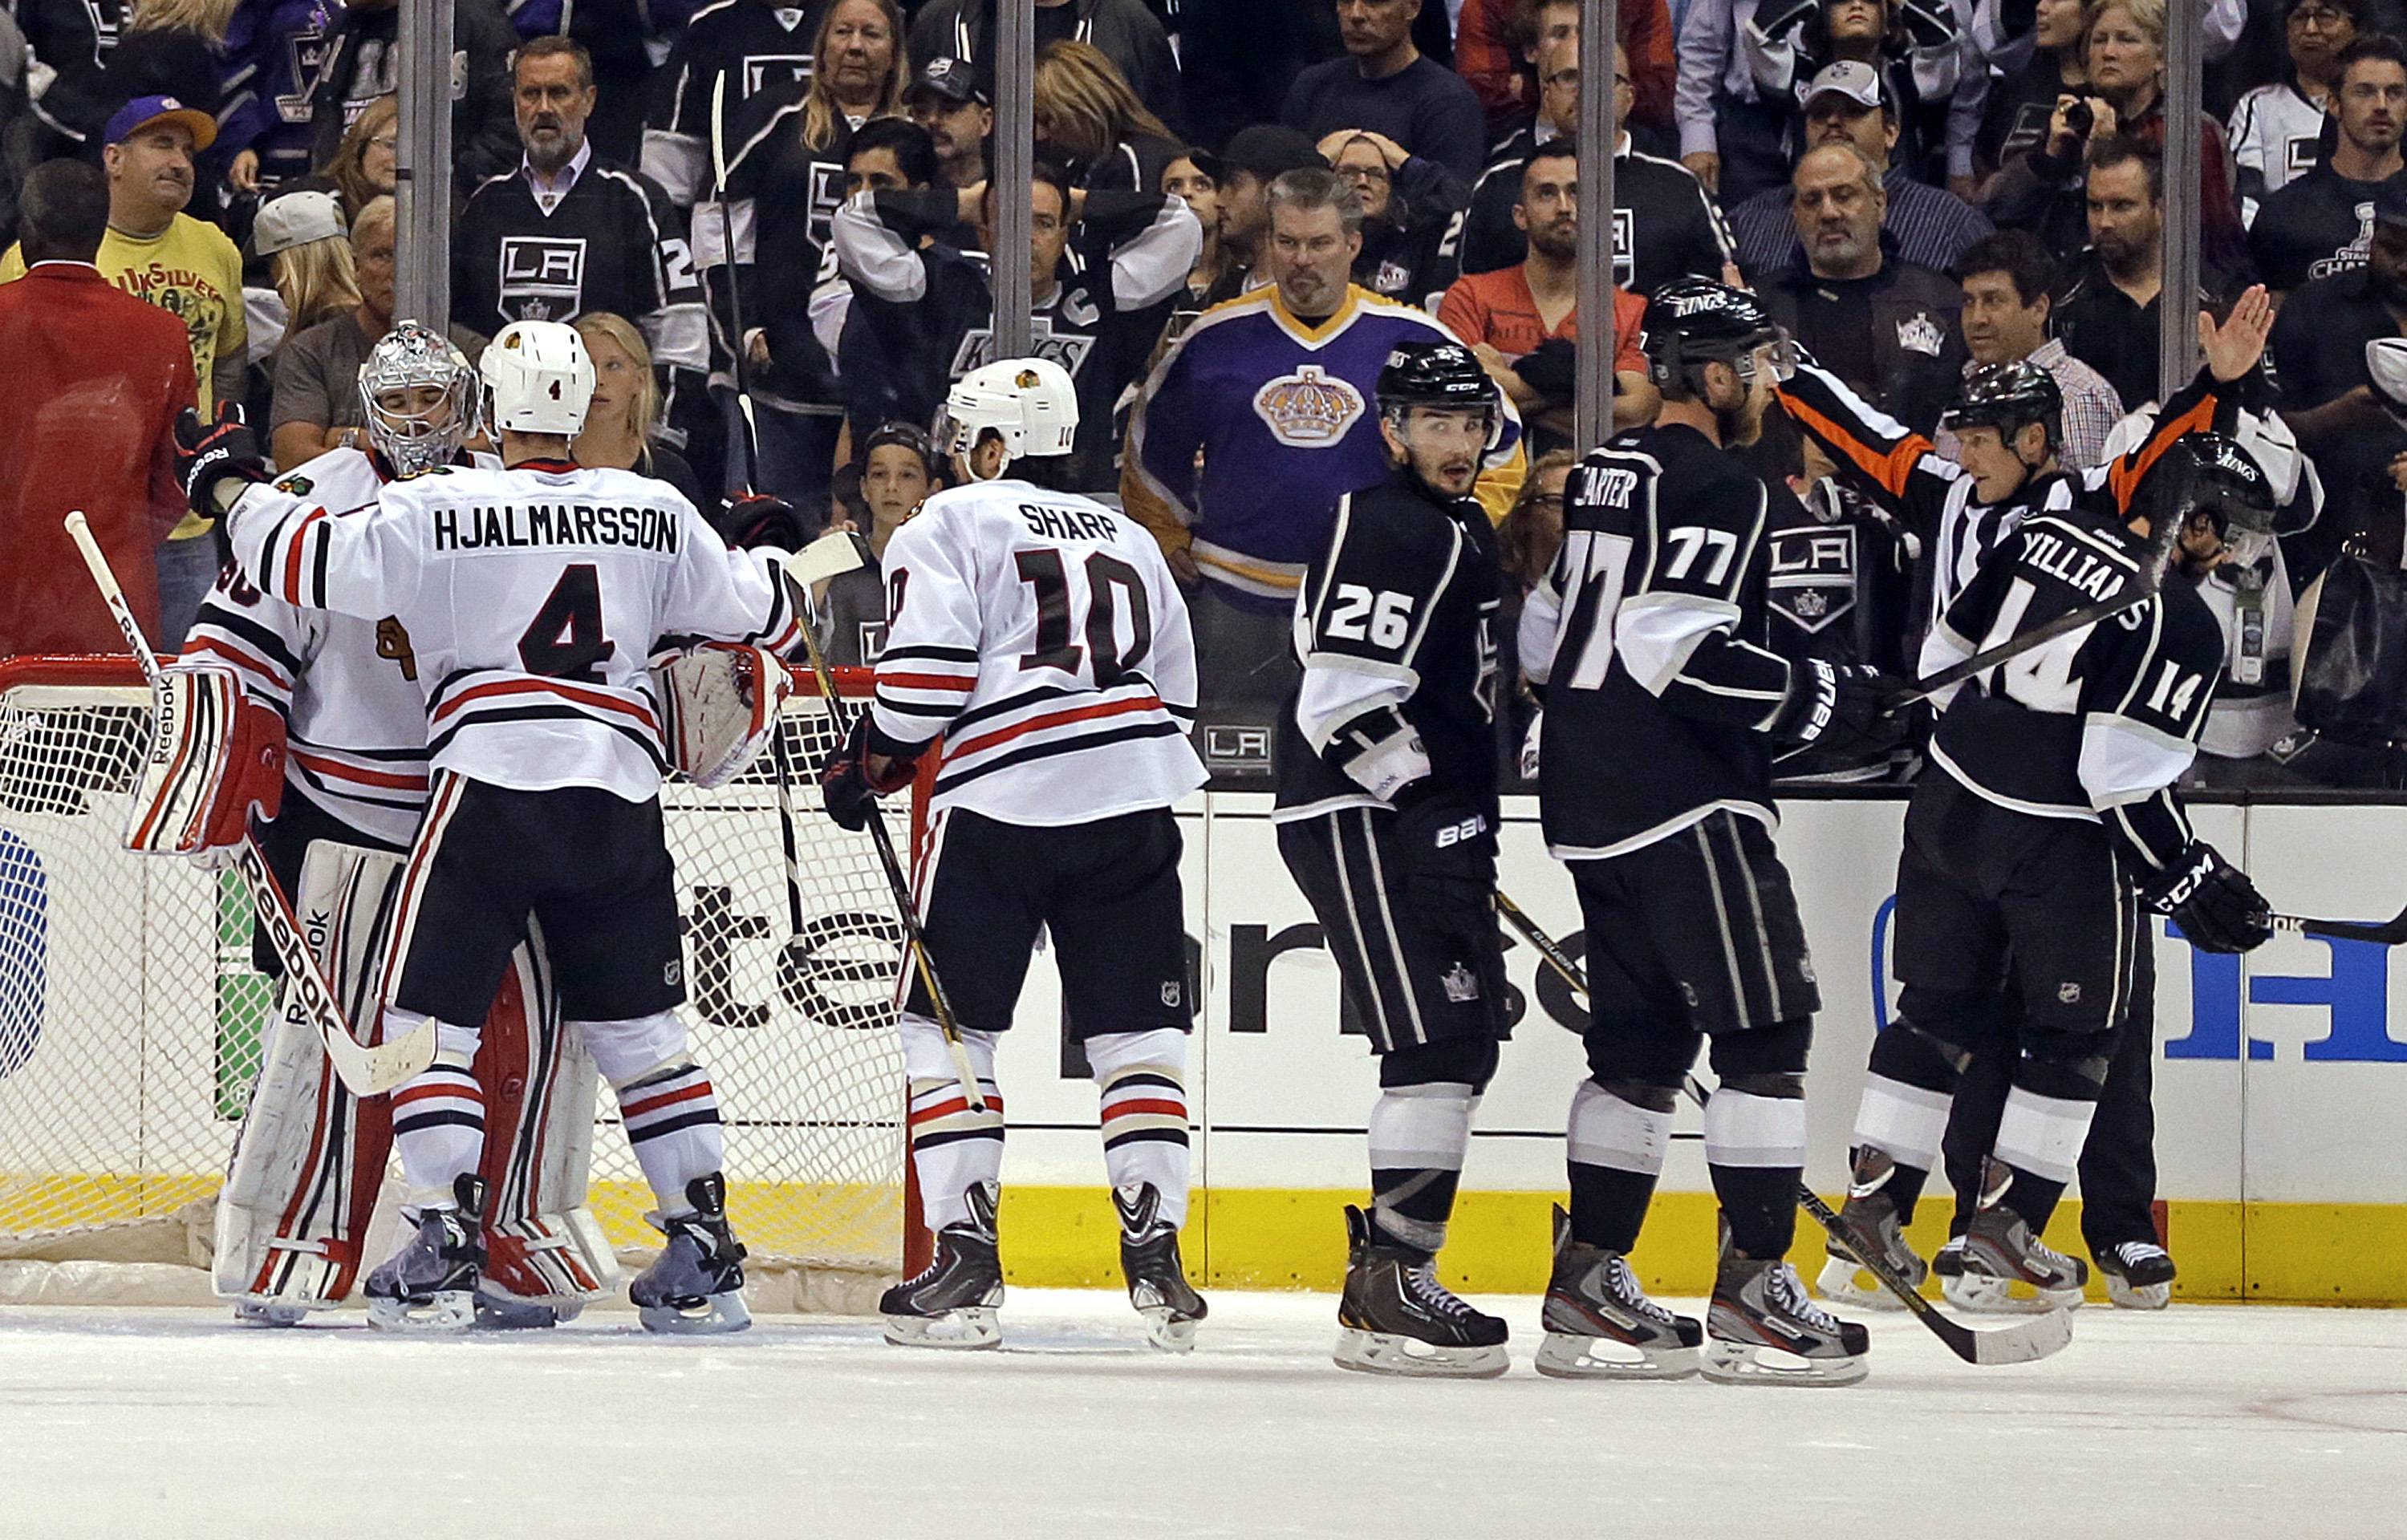 The Chicago Blackhawks celebrate their 3-2 win as the Los Angeles Kings return to the bench in the third period of Game 4 of the NHL hockey Stanley Cup playoffs Western Conference finals, in Los Angeles on Thursday, June 6, 2013.